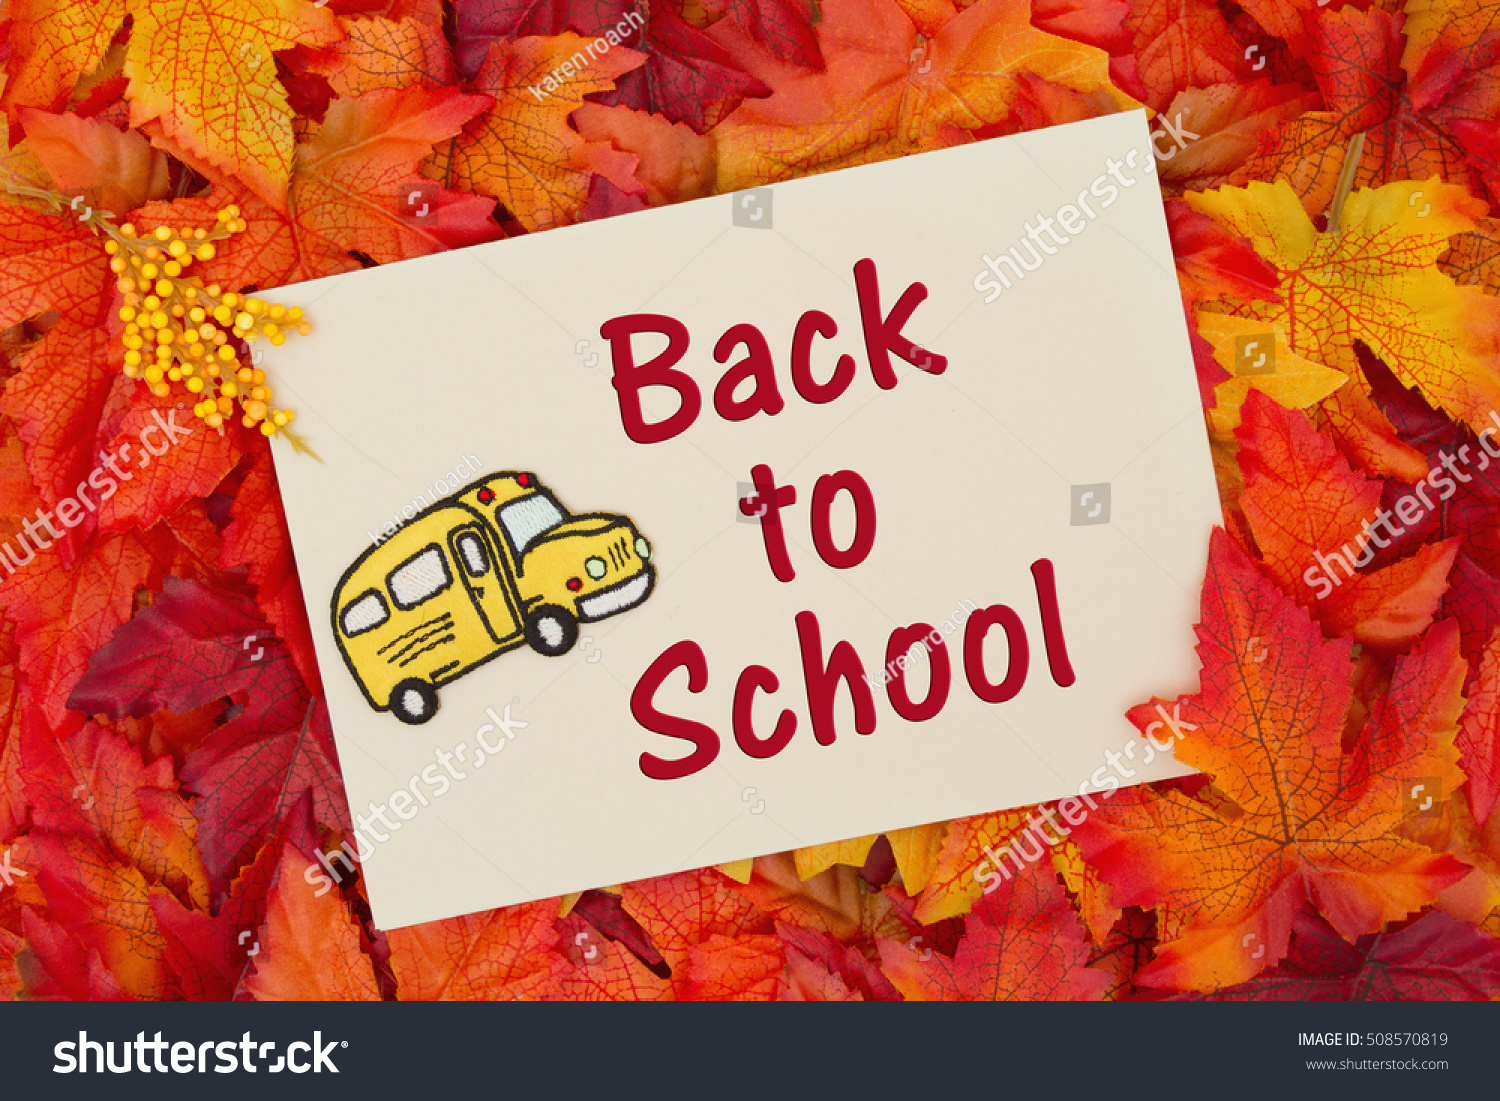 Back School Message Some Fall Leaves Stock Photo Royalty Free